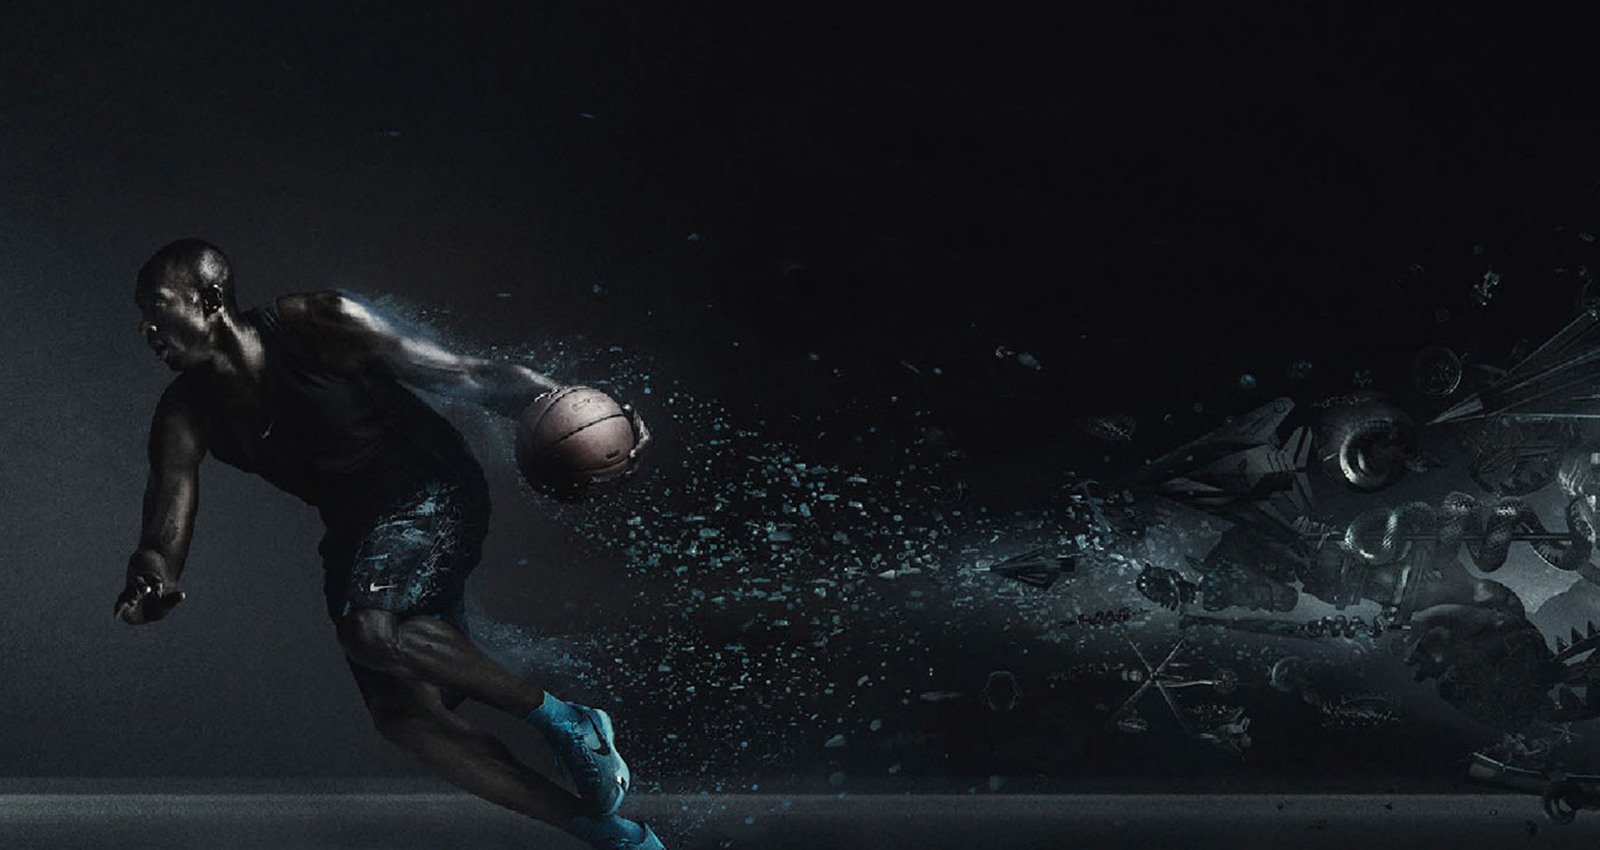 Nike Kobe X Campaign ? The Temple of Deadly Quickness